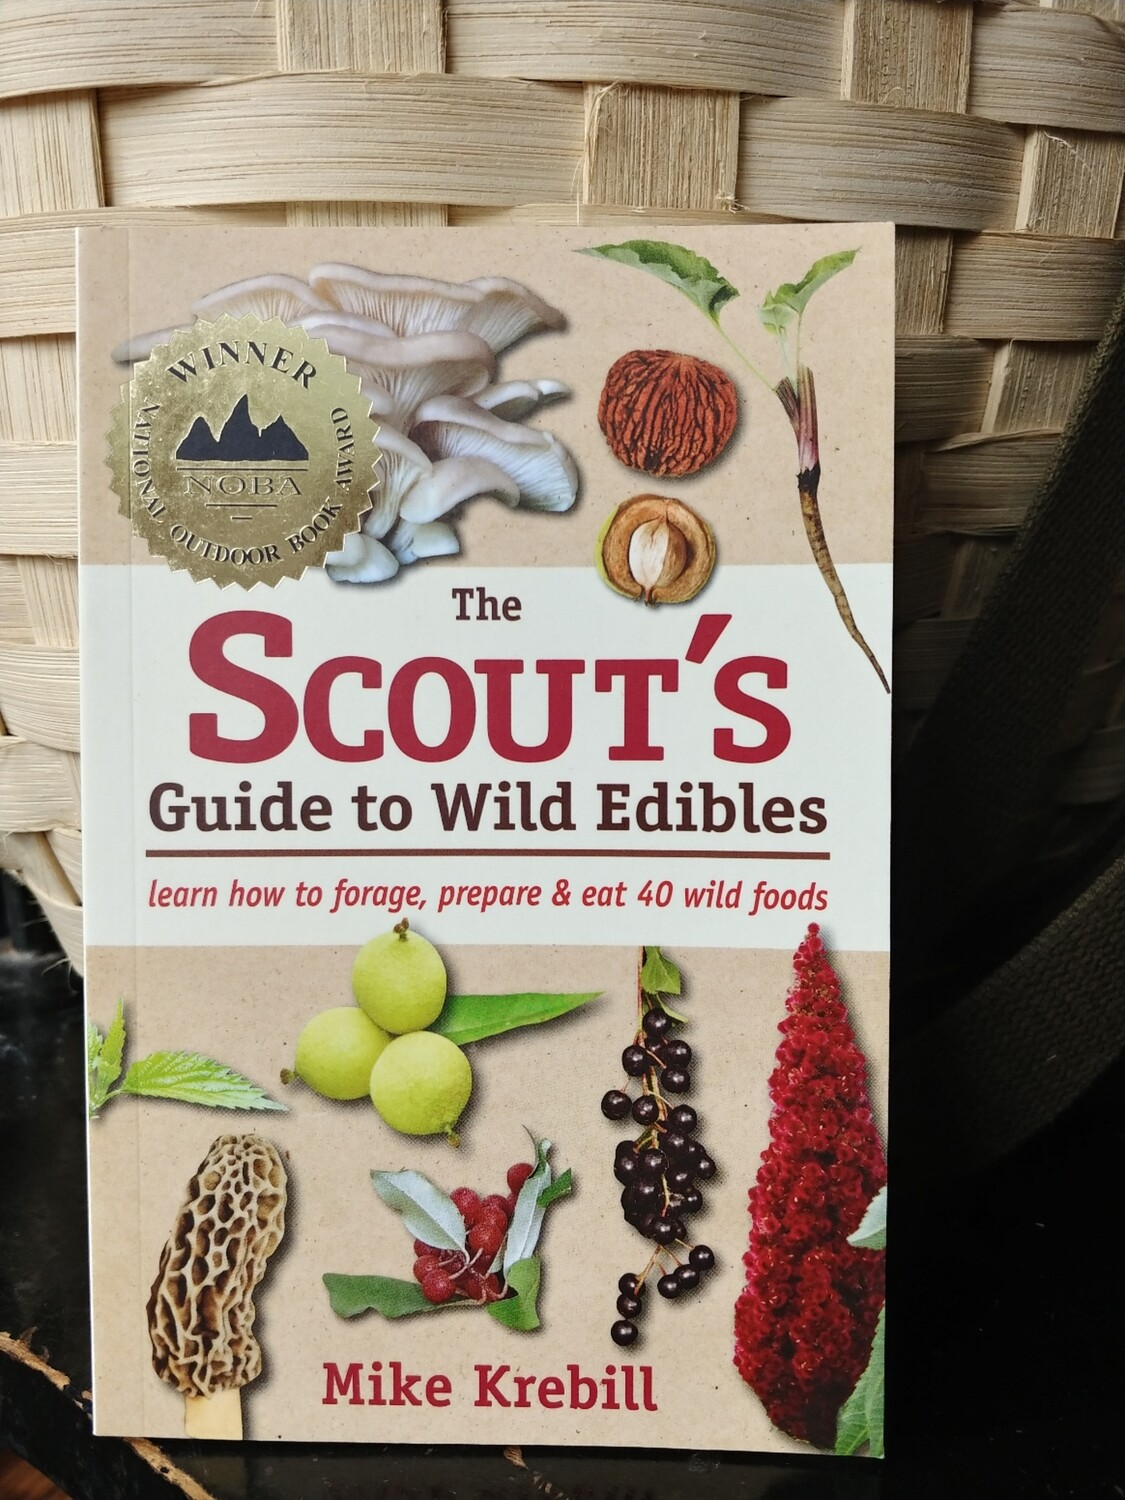 The Scout's Guide to Wild Edibles by Mike Krebill